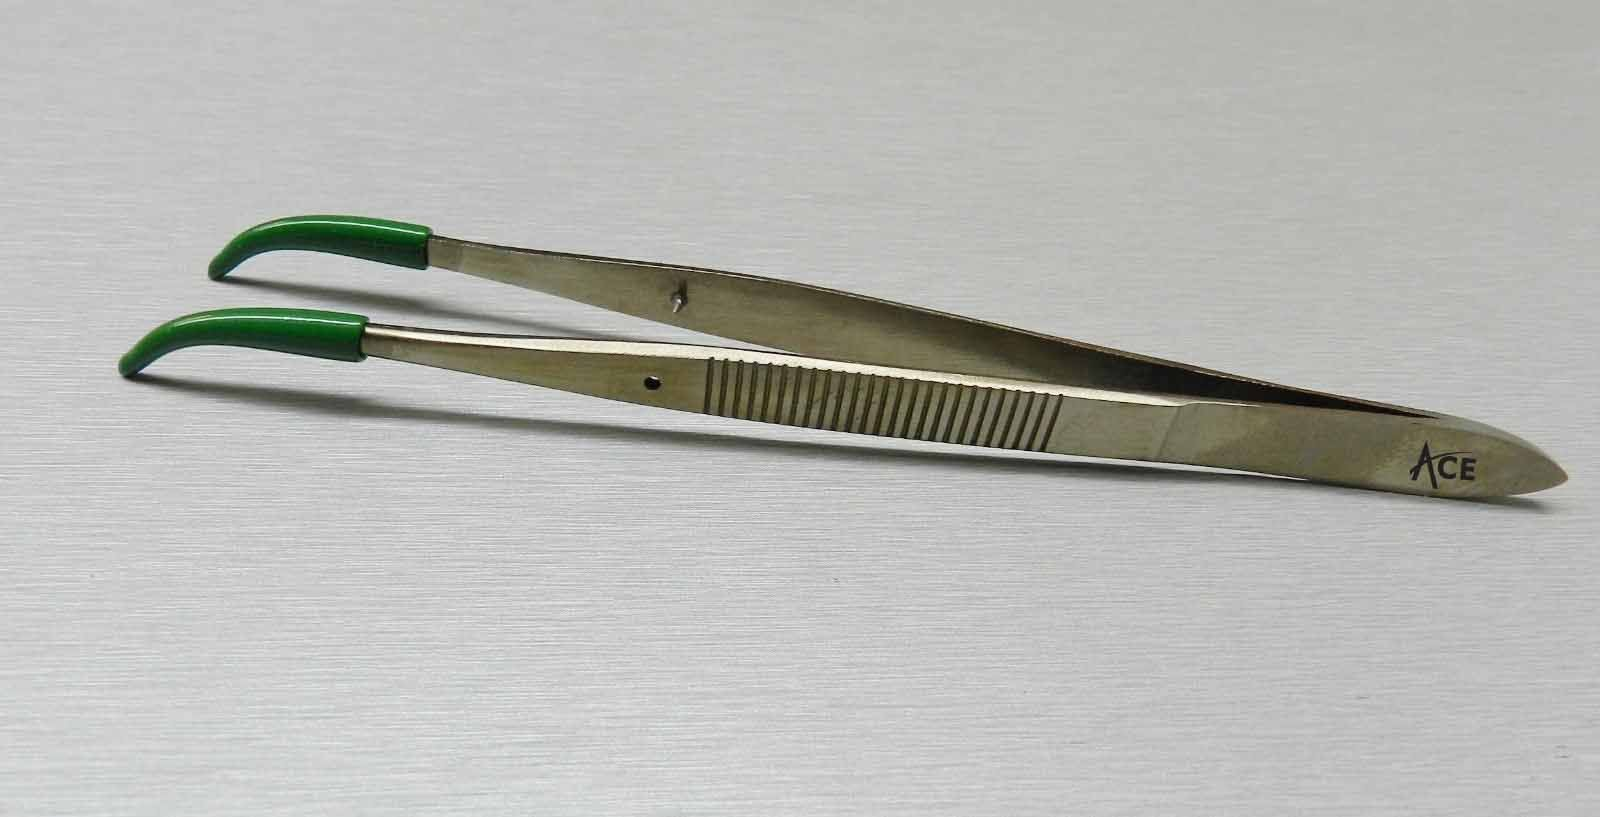 ACE Tweezers Curved Tip Rubber Tips PVC Coated Curved Tweezer Jewelry Hobby Craft by ACE (Image #4)